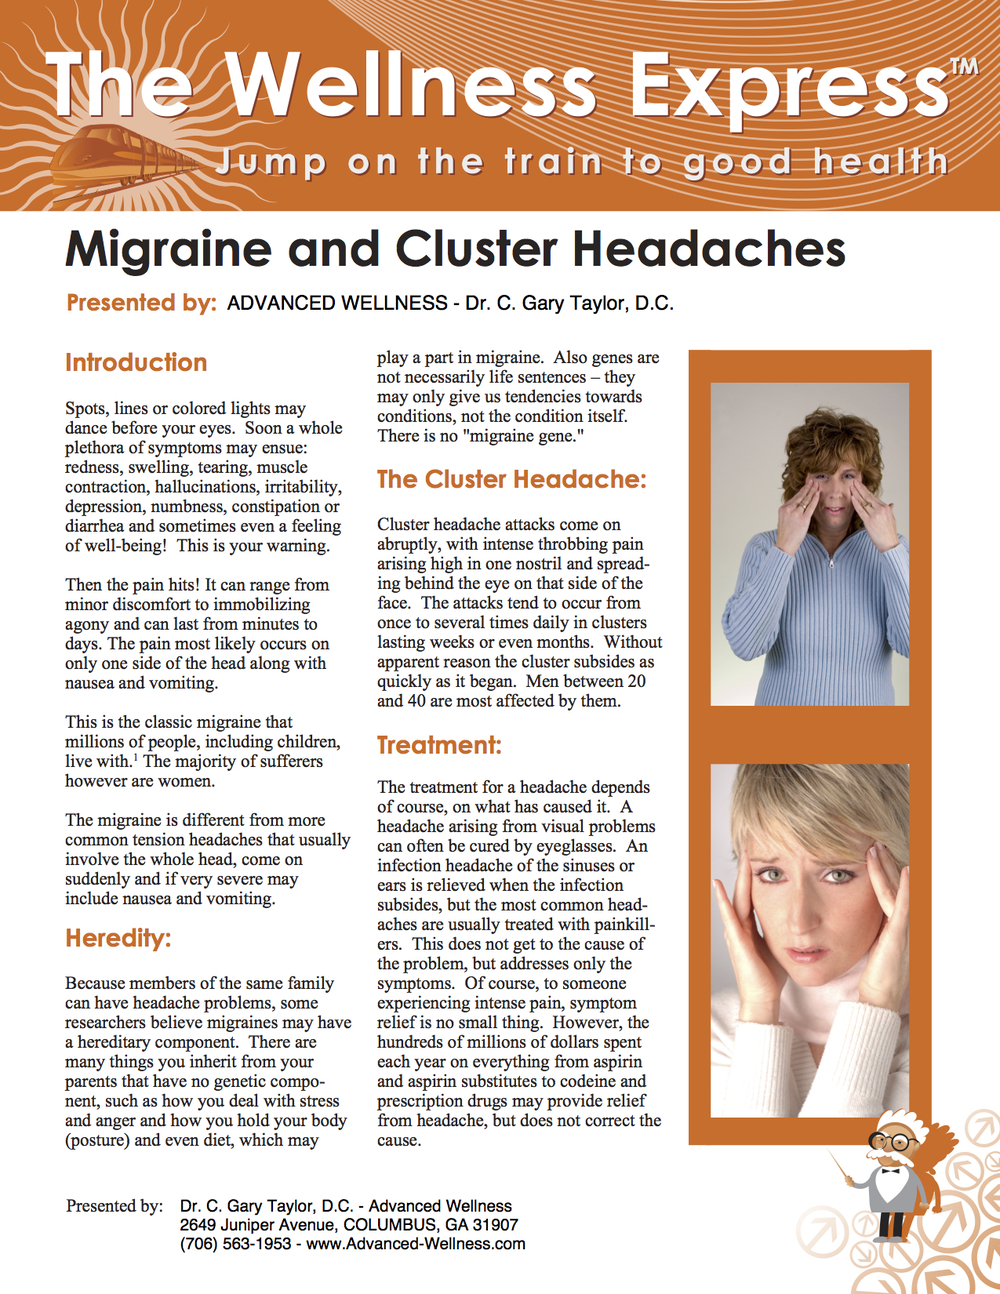 Weekly Newsletter: Migraines and Cluster Headaches